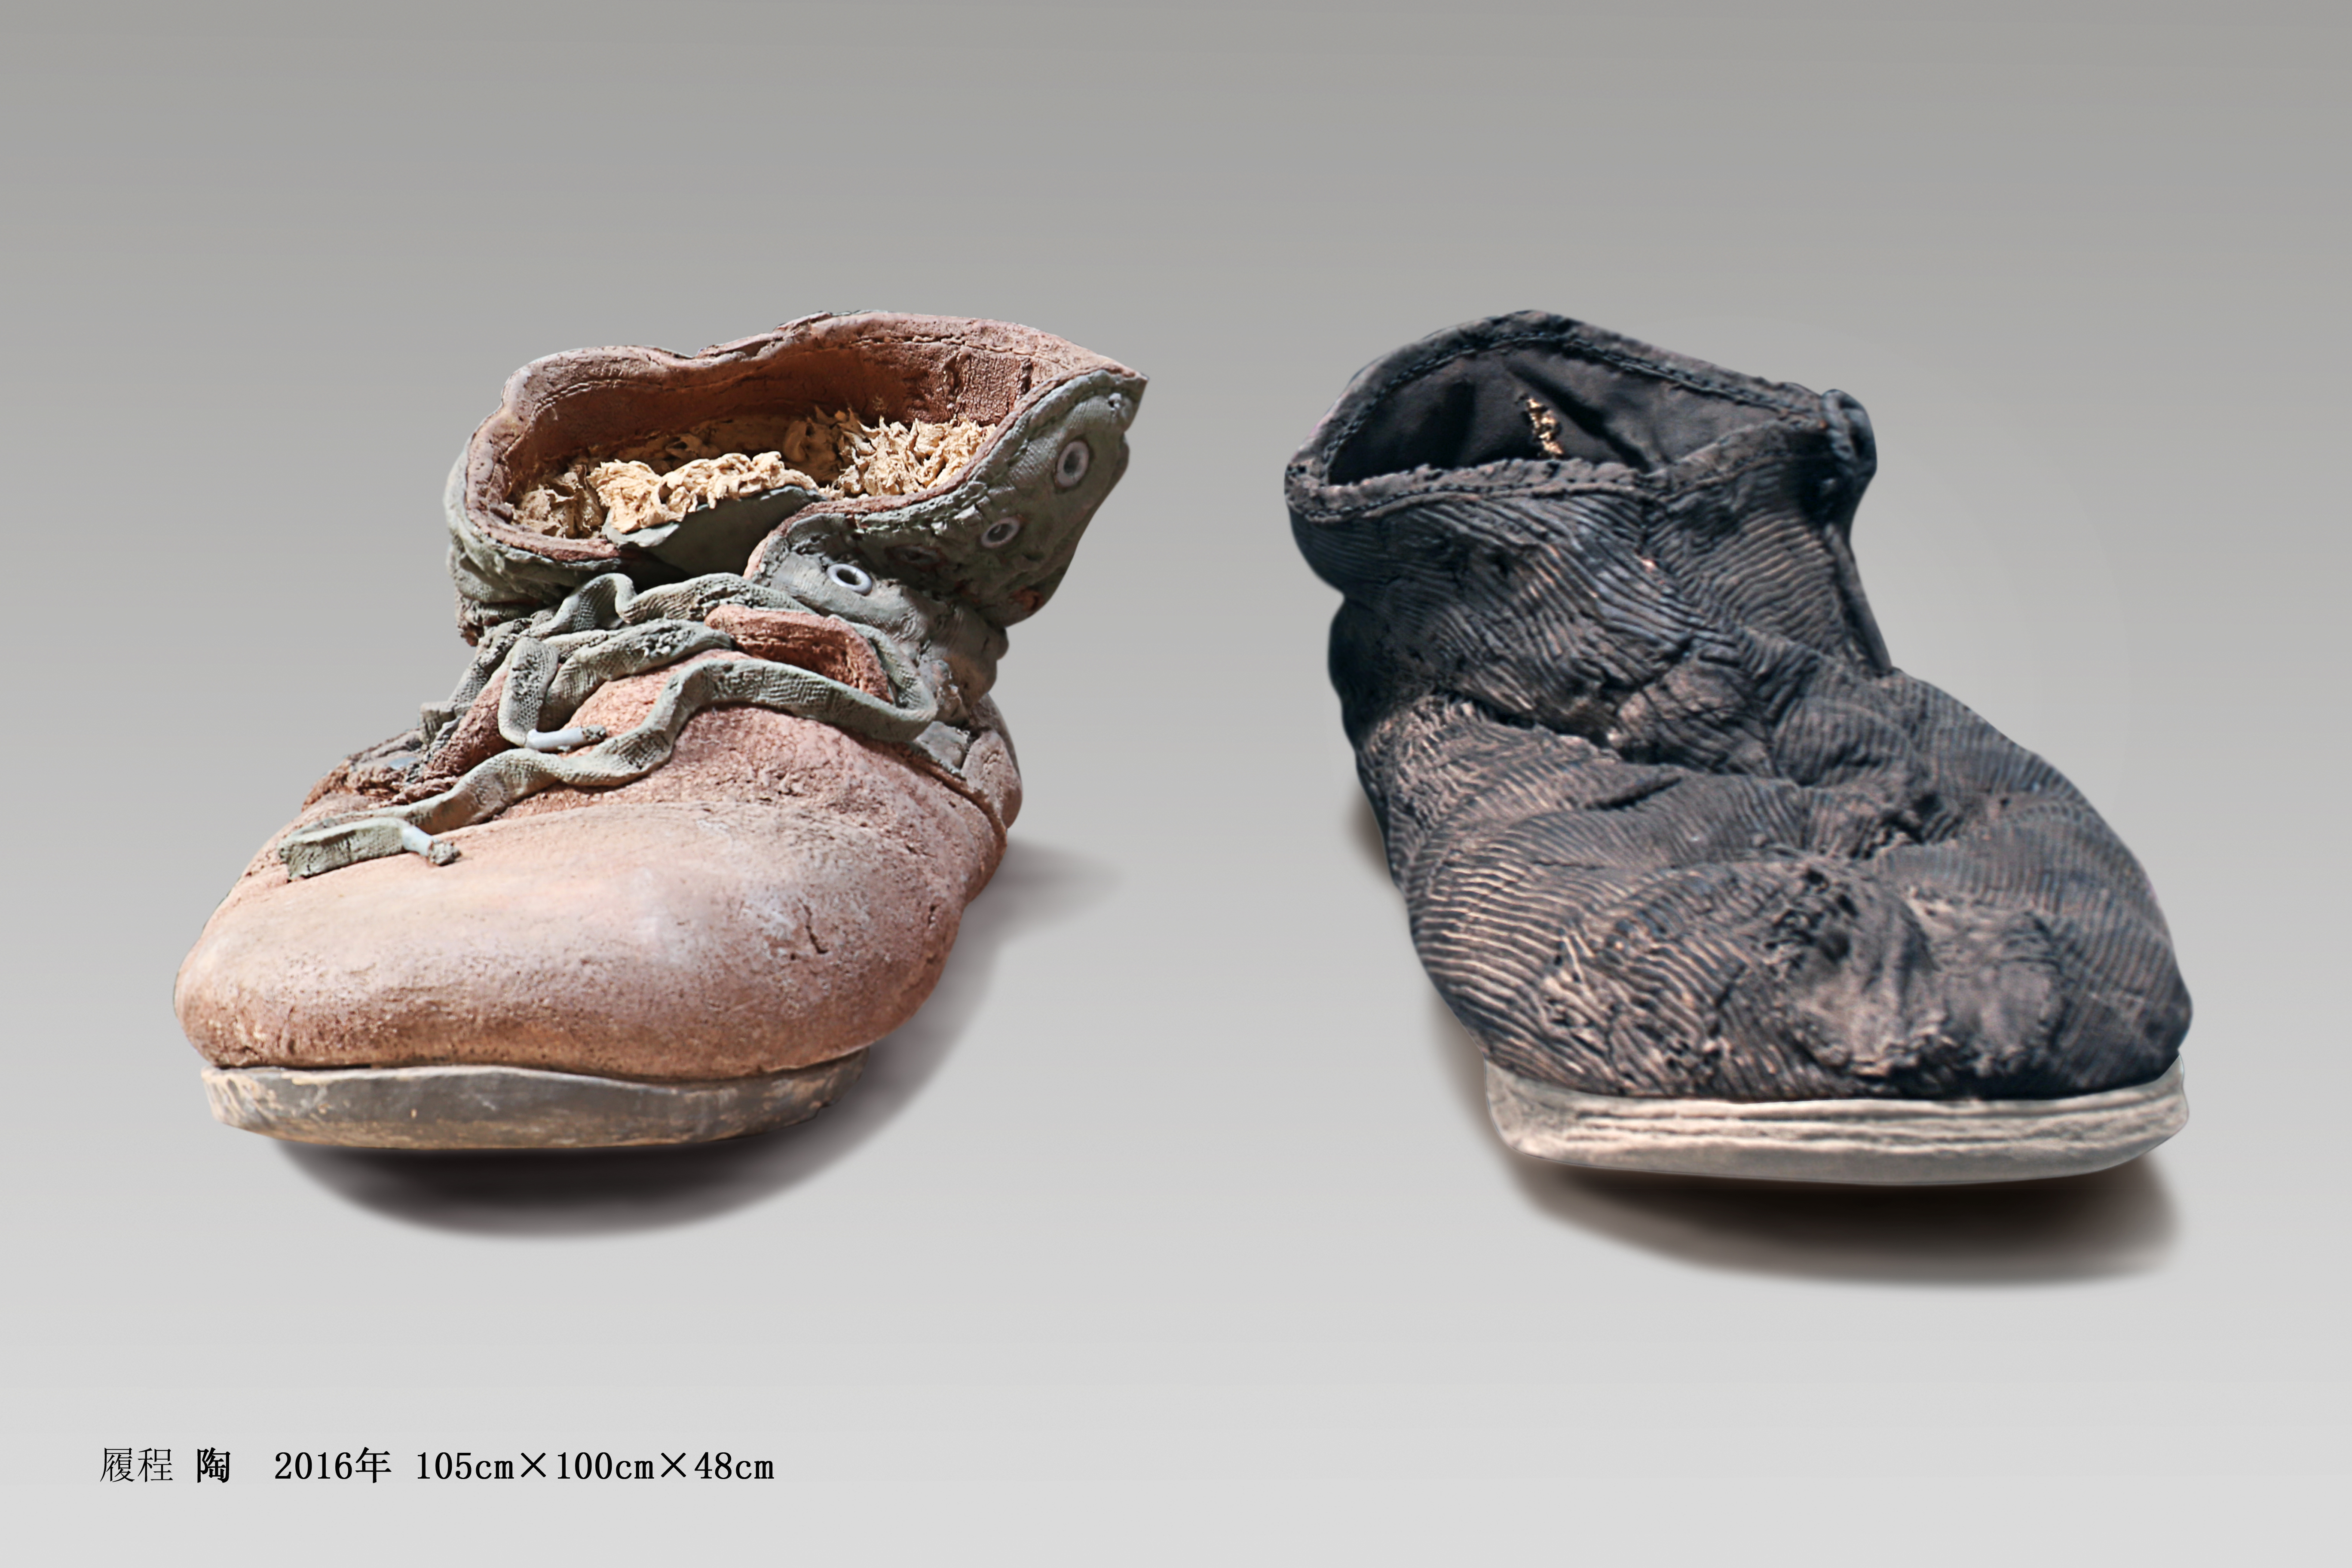 Chao Brothers, Pottery shoes, 2014, terra cotta, cm 100x45x50Chao Brothers, Pottery shoes, 2014, terra cotta, cm 100x45x50